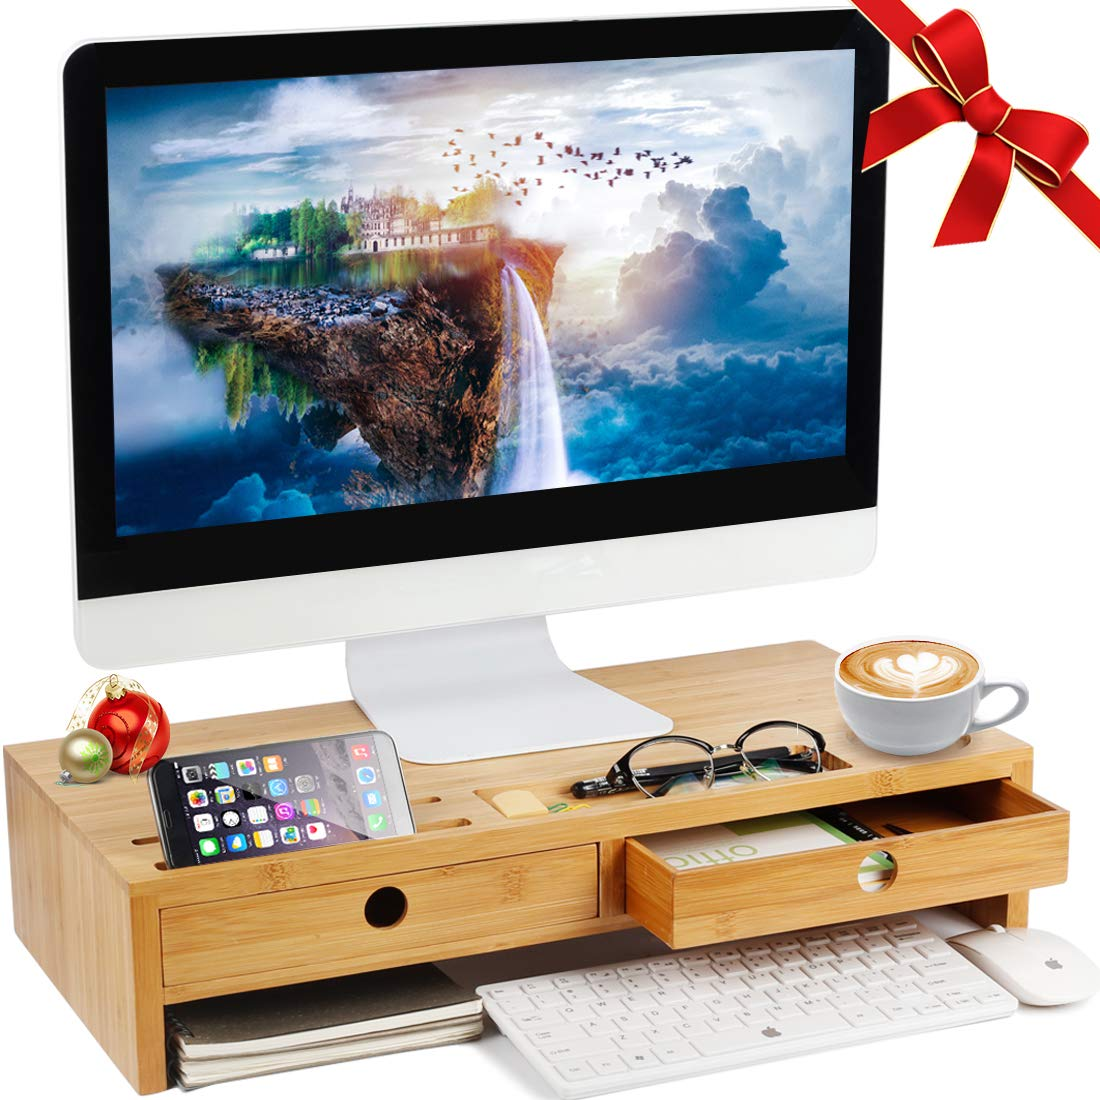 Herdzi Monitor Stand Riser with Drawers, Desktop,Laptop Stand Riser with Keyboard Storage Space for Home & Office Use by Herdzi